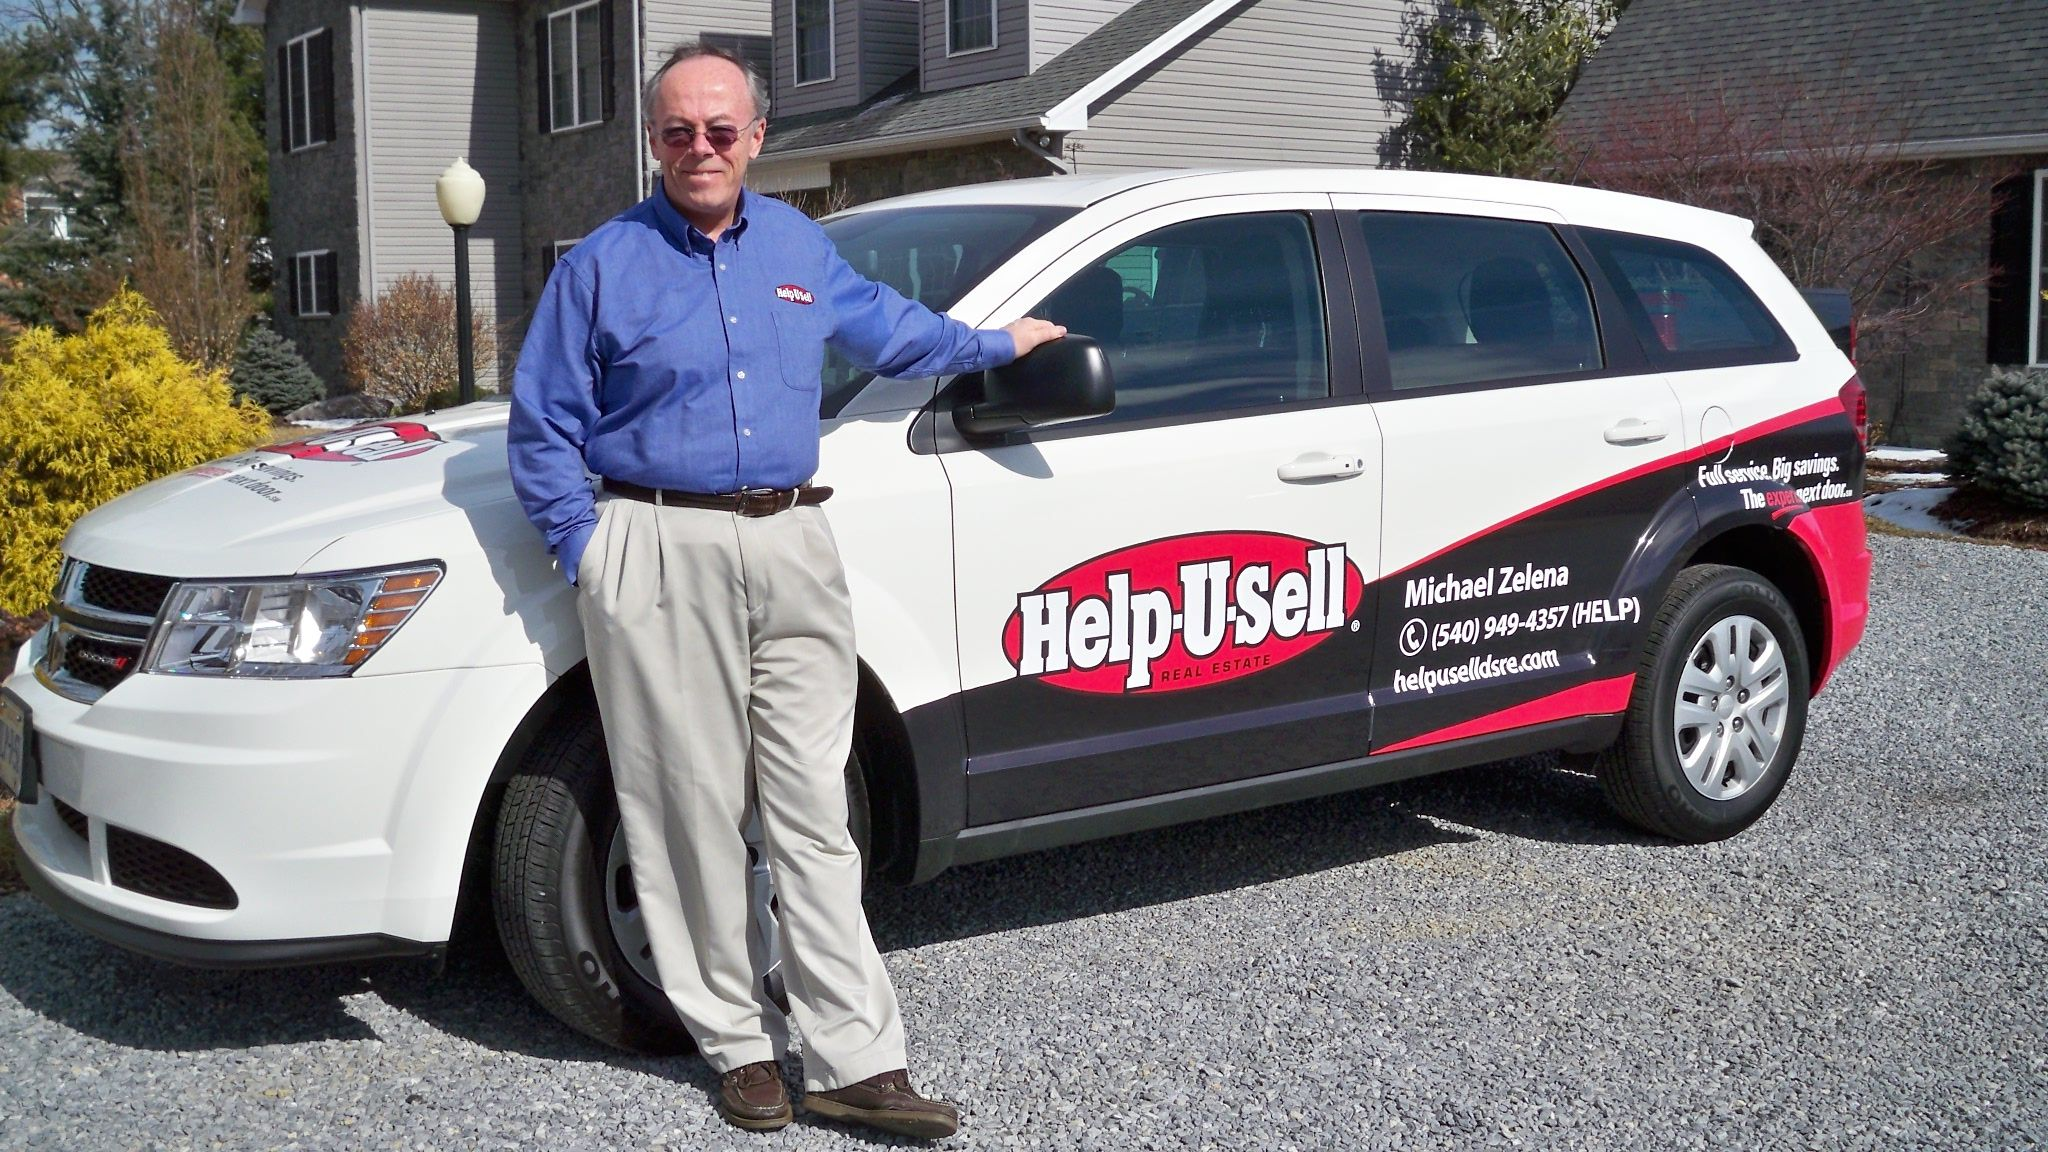 Mike Zelena of Help-U-Sell Direct Savings Real Estate poses with his ...